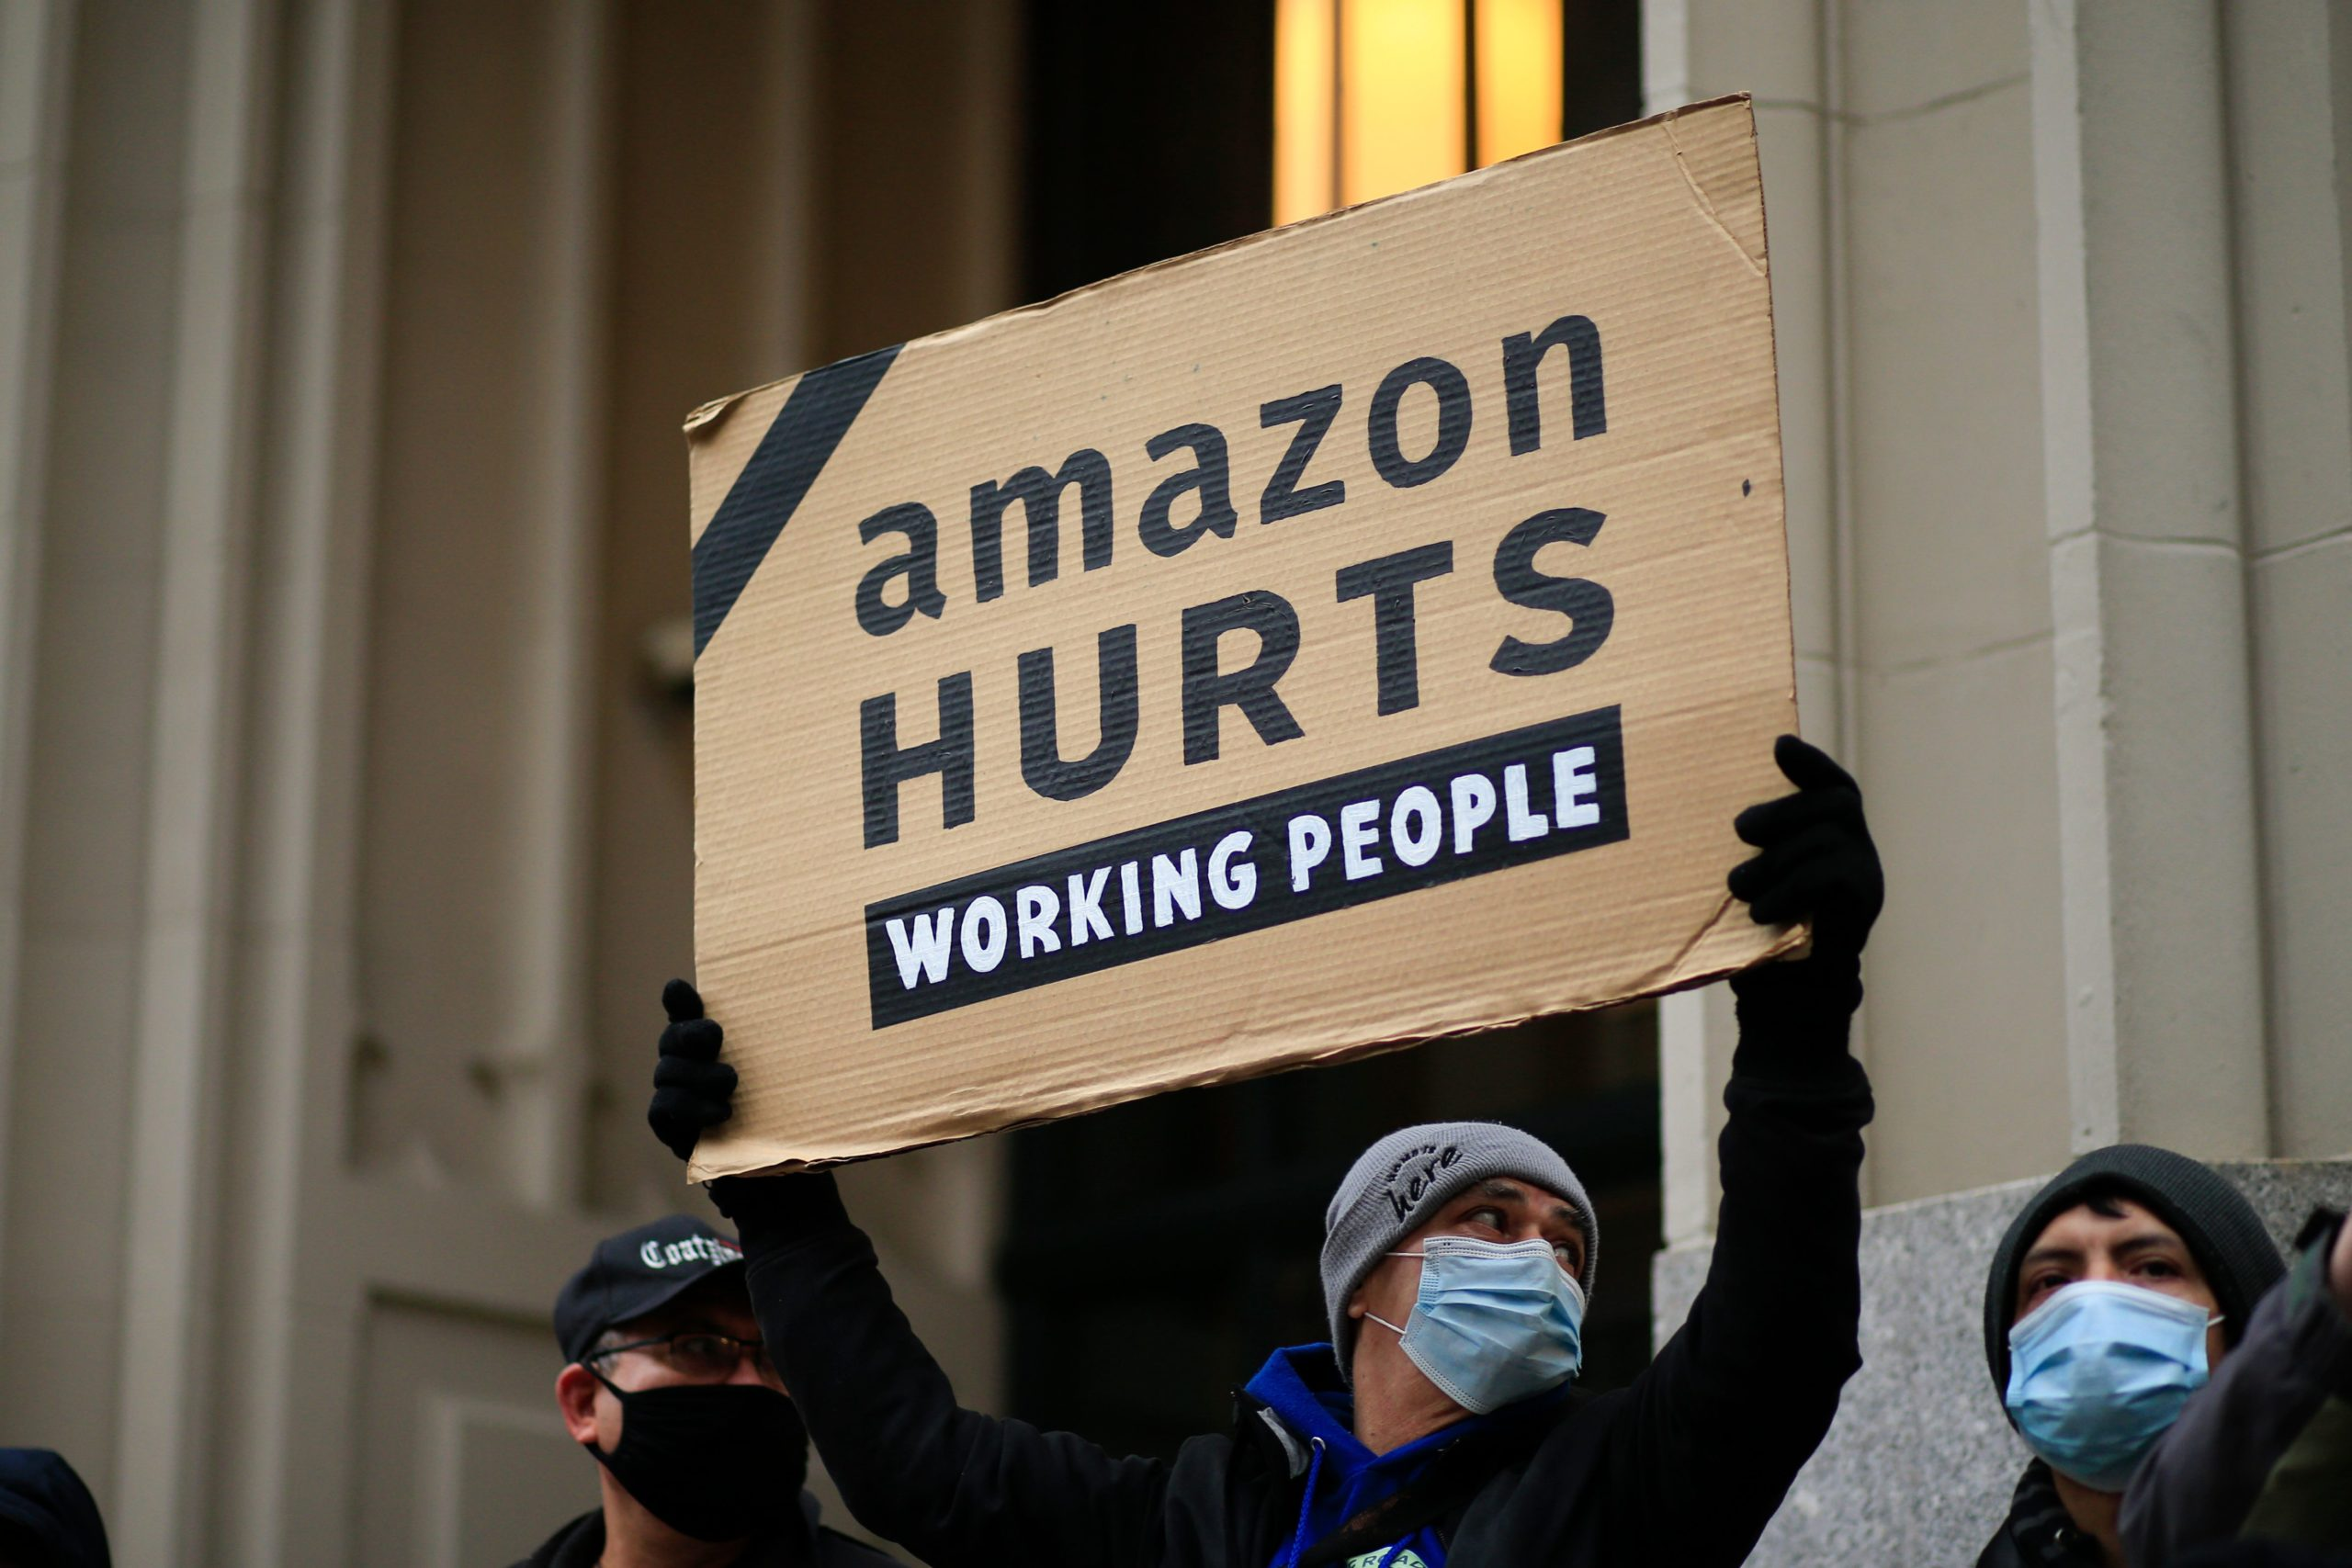 Amazon workers and community allies demonstrate during a protest organized by New York Communities for Change and Make the Road New York in front of the Jeff Bezos' Manhattan residence in New York on December 2, 2020. (Photo by Kena Betancur / AFP) (Photo by KENA BETANCUR/AFP via Getty Images)